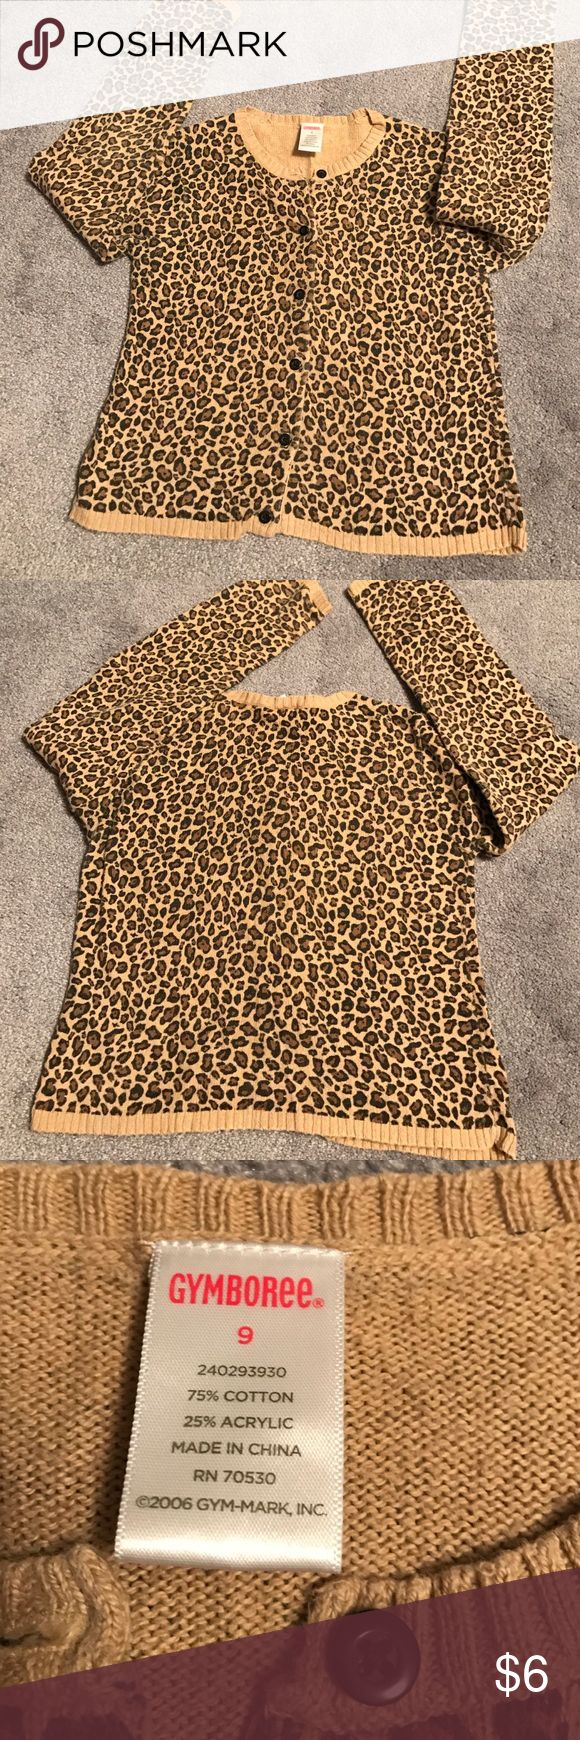 Gymboree size 9 cheetah print sweater Gymboree cheetah print sweater. Size 9 girls. (But listed as size 8, because there is no 9 under girls) Worn and in good condition. Gymboree Shirts & Tops Sweaters